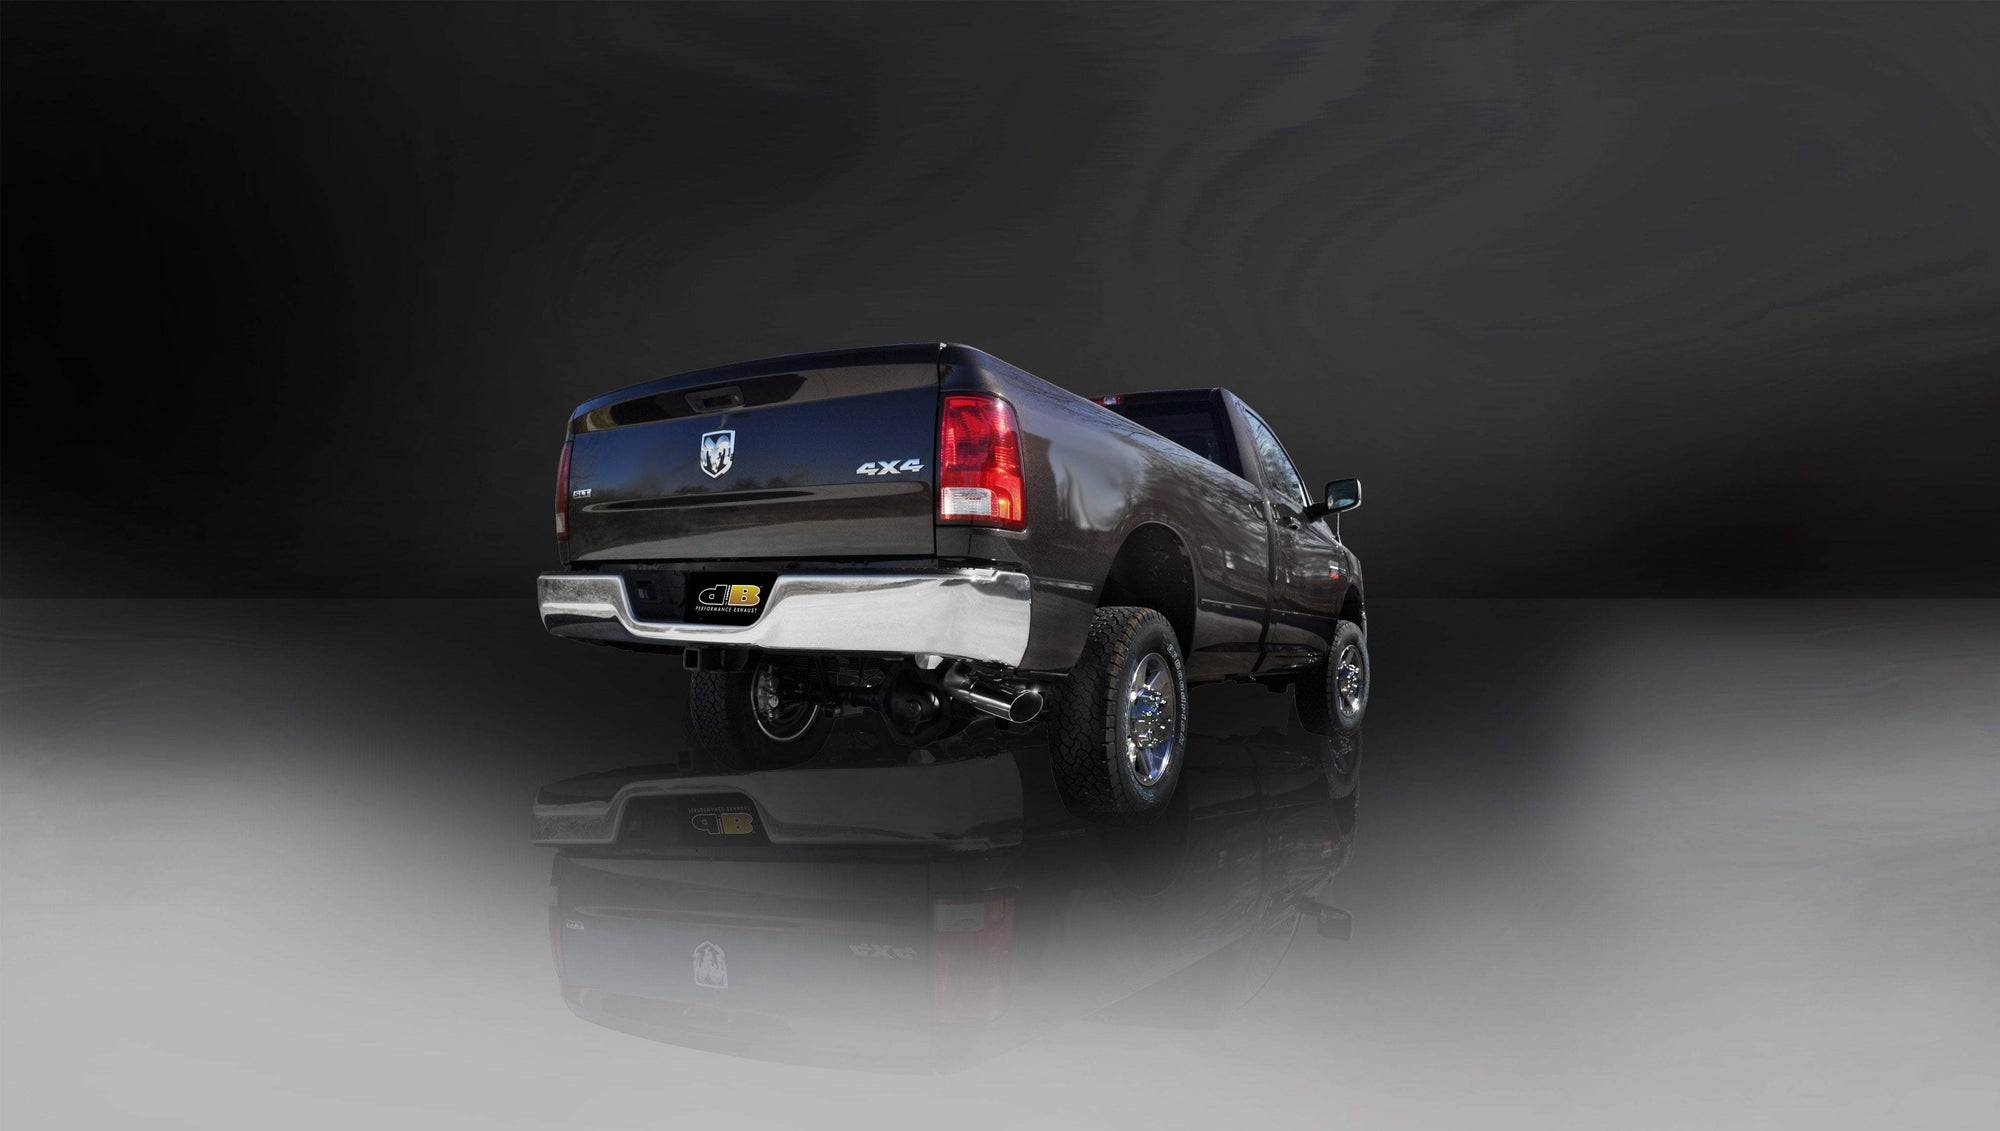 "dB Cat-Back Exhaust Polished / Sport / Single Side - Single 4in Slash Cut 2010-2013 Dodge RAM 5.7L V8, 2500 HD 3.0"" Single Side Exit Catback Exhaust System with 4.0"" Tip (24482) Sport Sound Level"